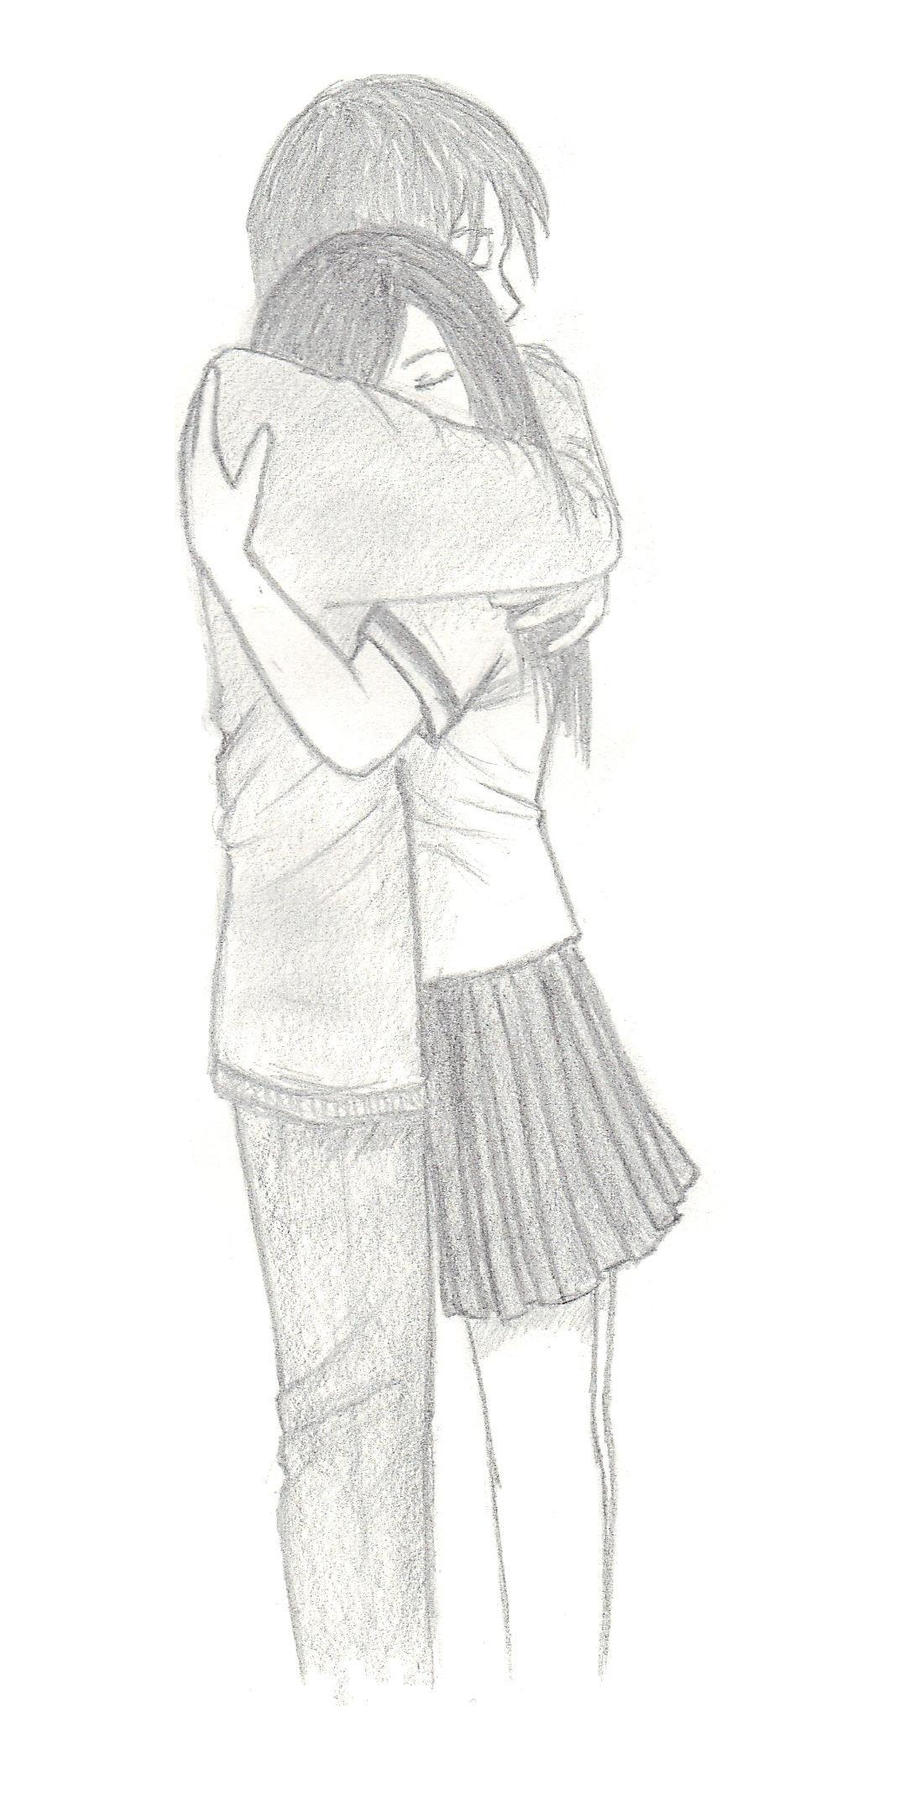 Hugging couple by PureSilver995 on DeviantArt